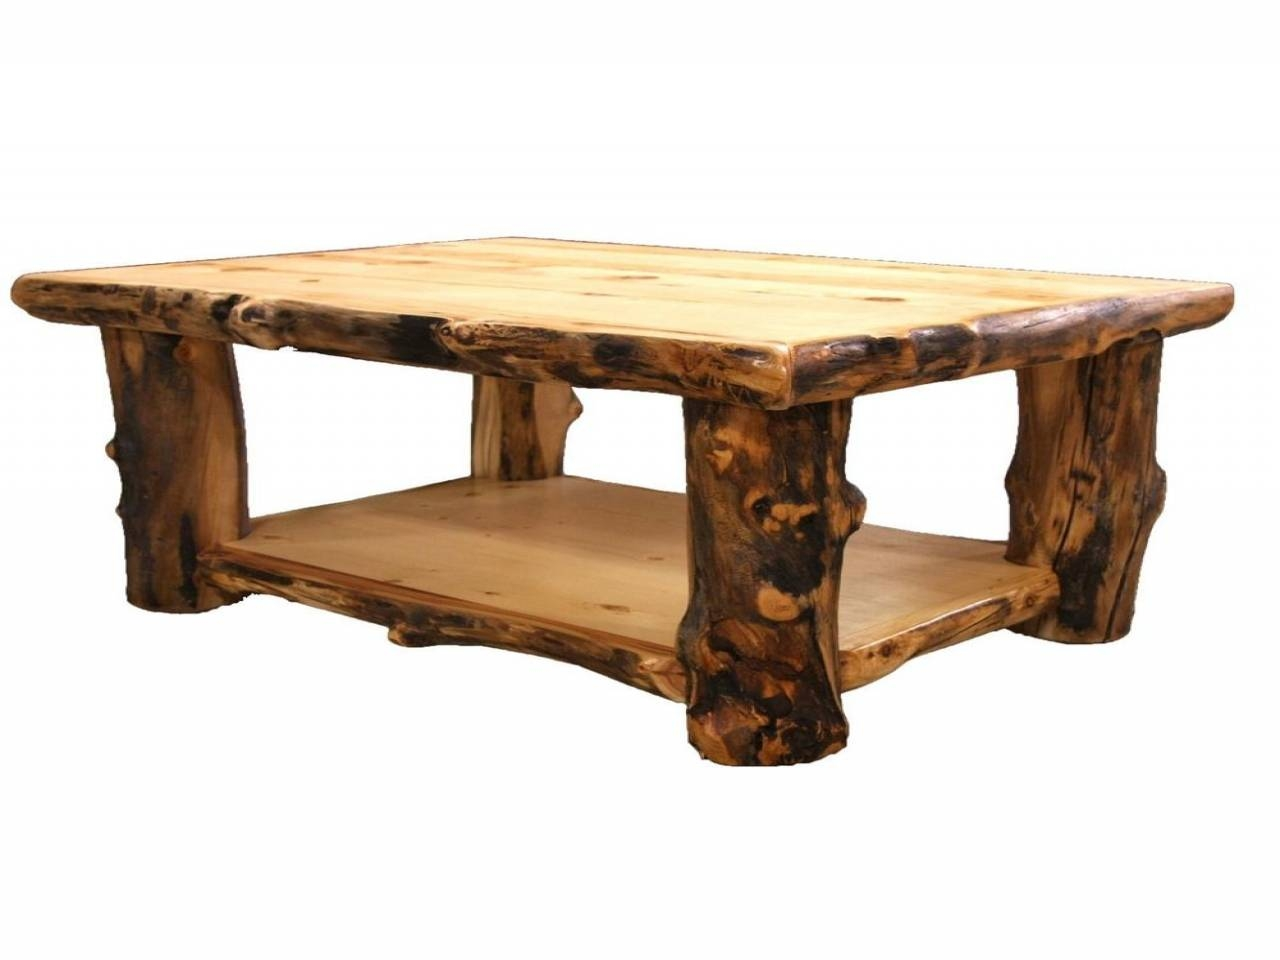 Coffee Table Stool, Rustic Looking Coffee Tables Rustic Log Coffee regarding Rustic Looking Coffee Tables (Image 7 of 15)